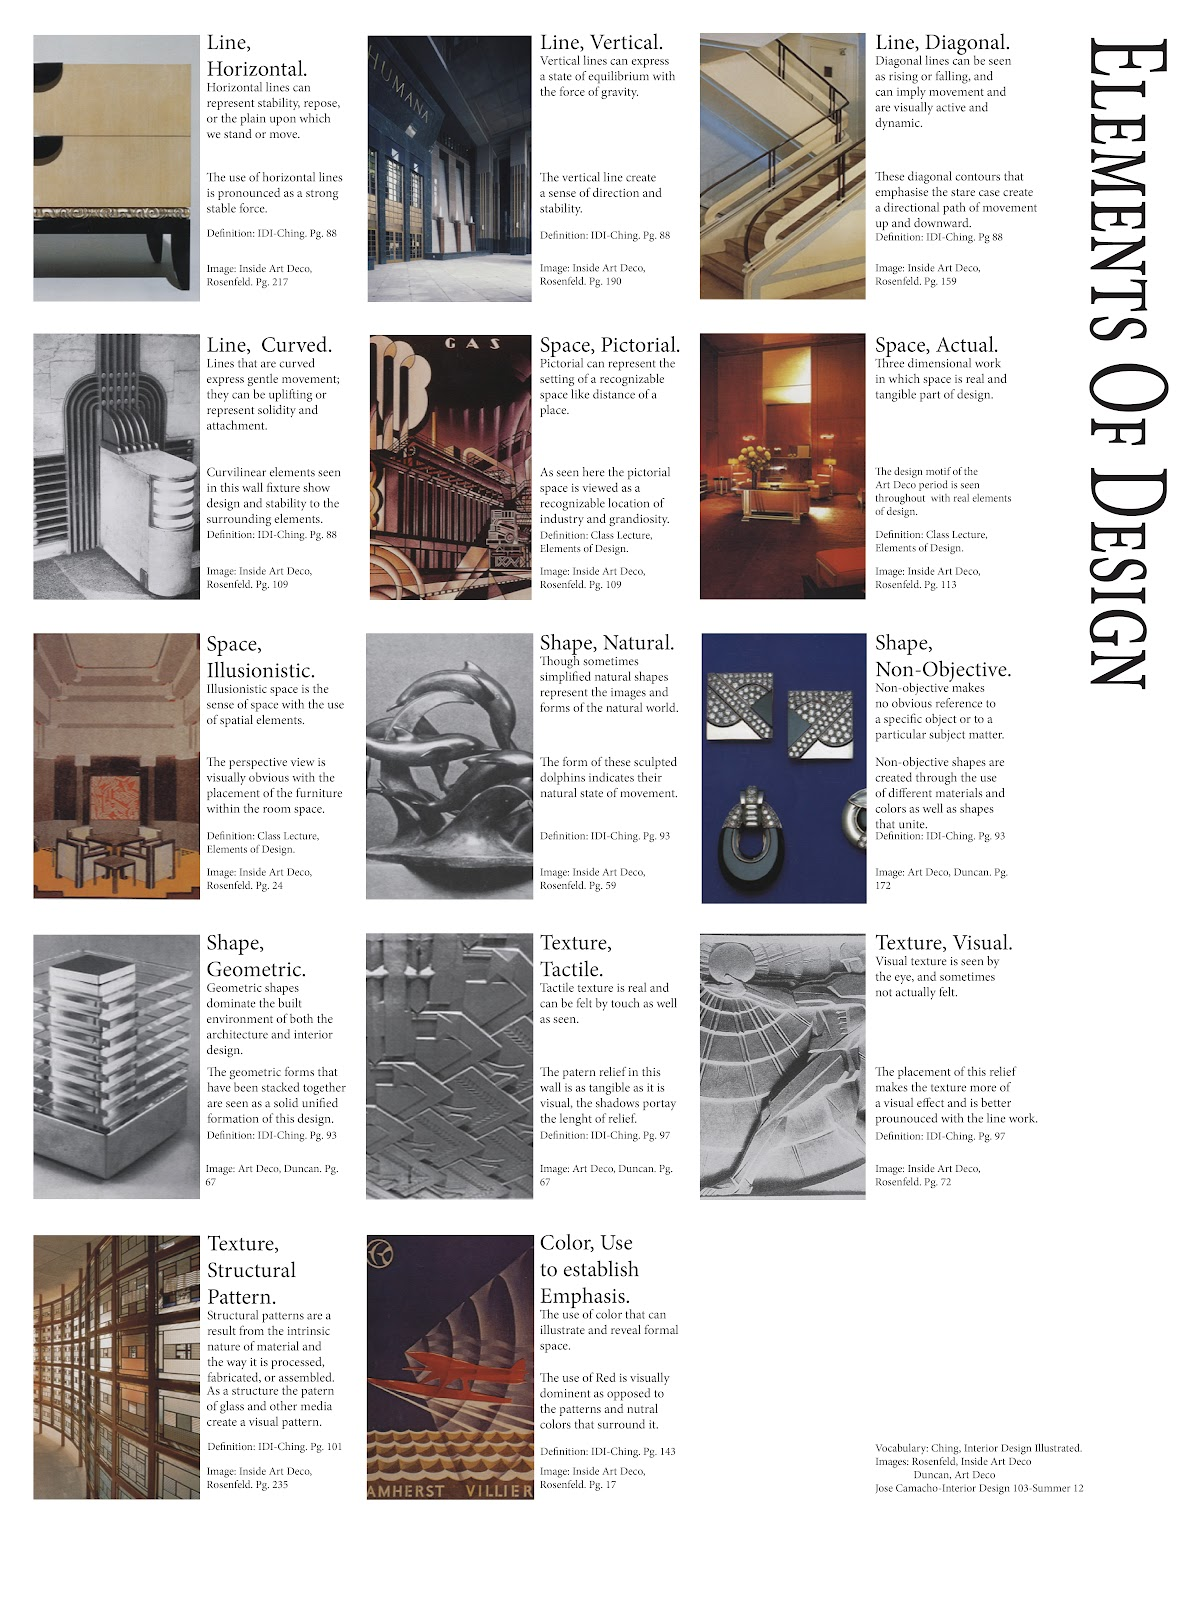 Jose C Elements And Principles Of Design